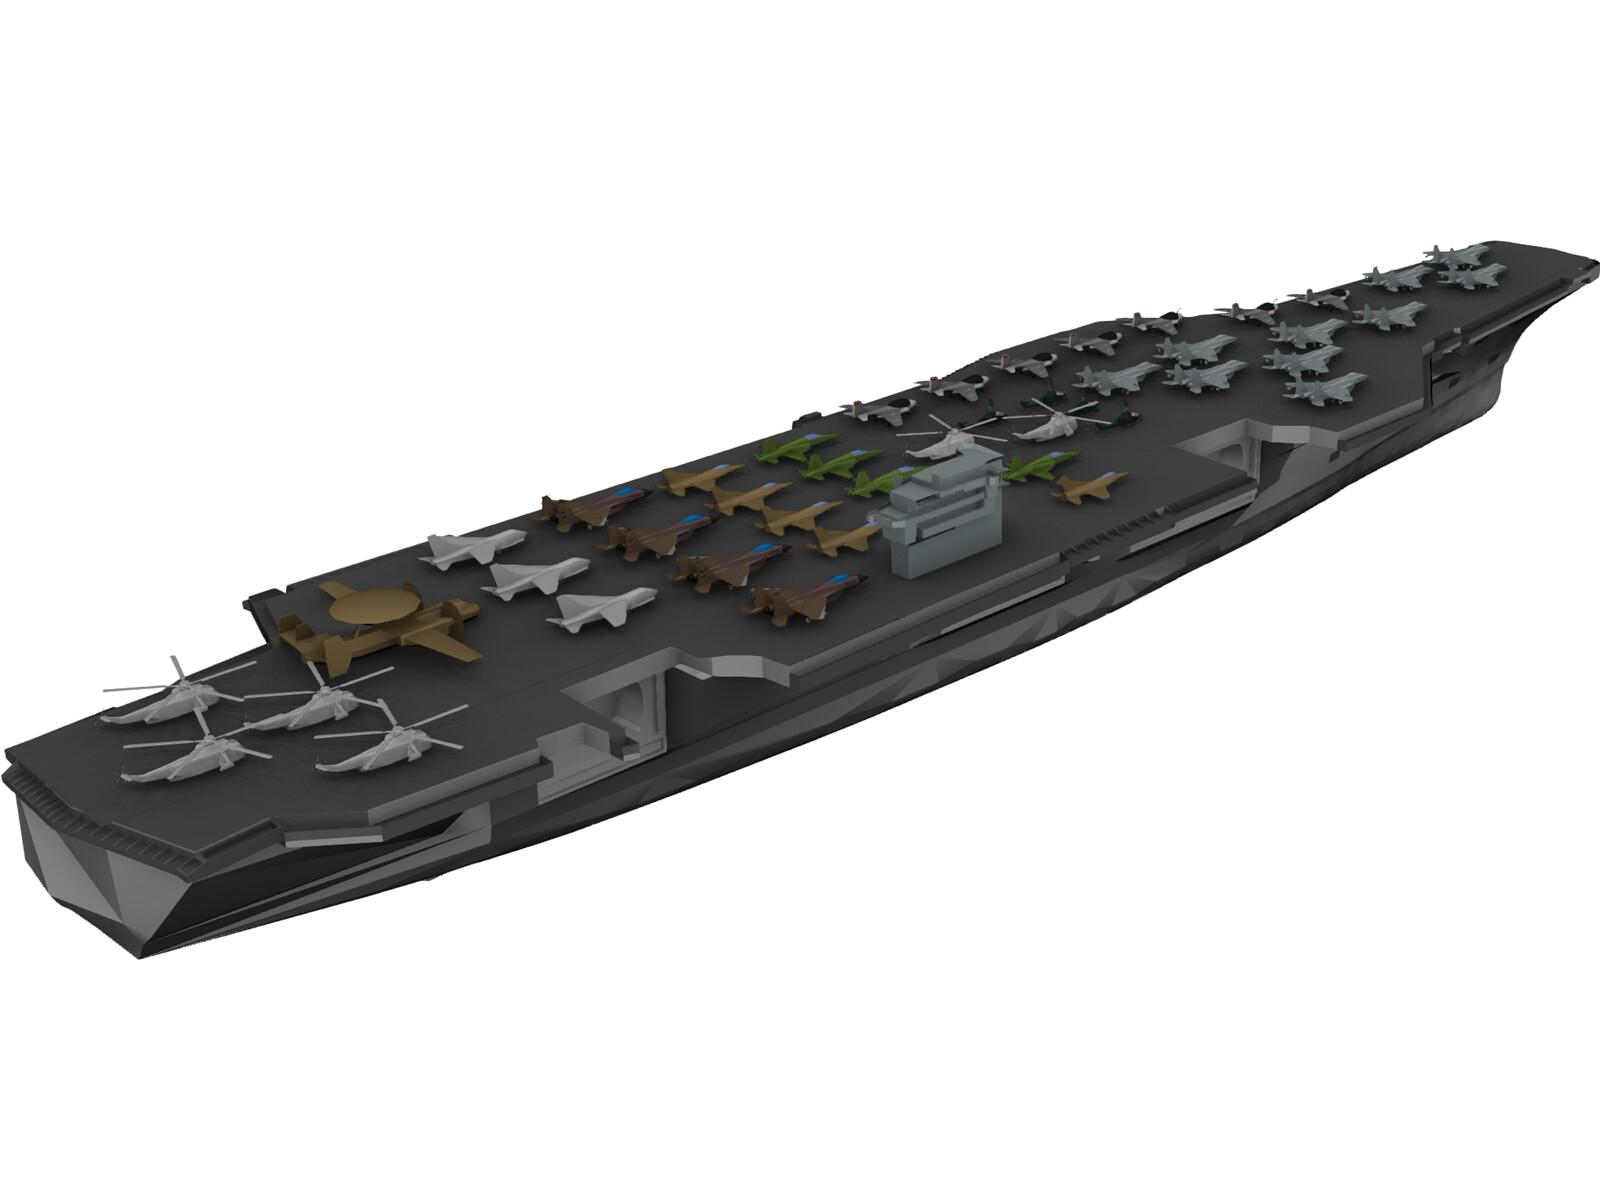 Military Ship with Airplanes